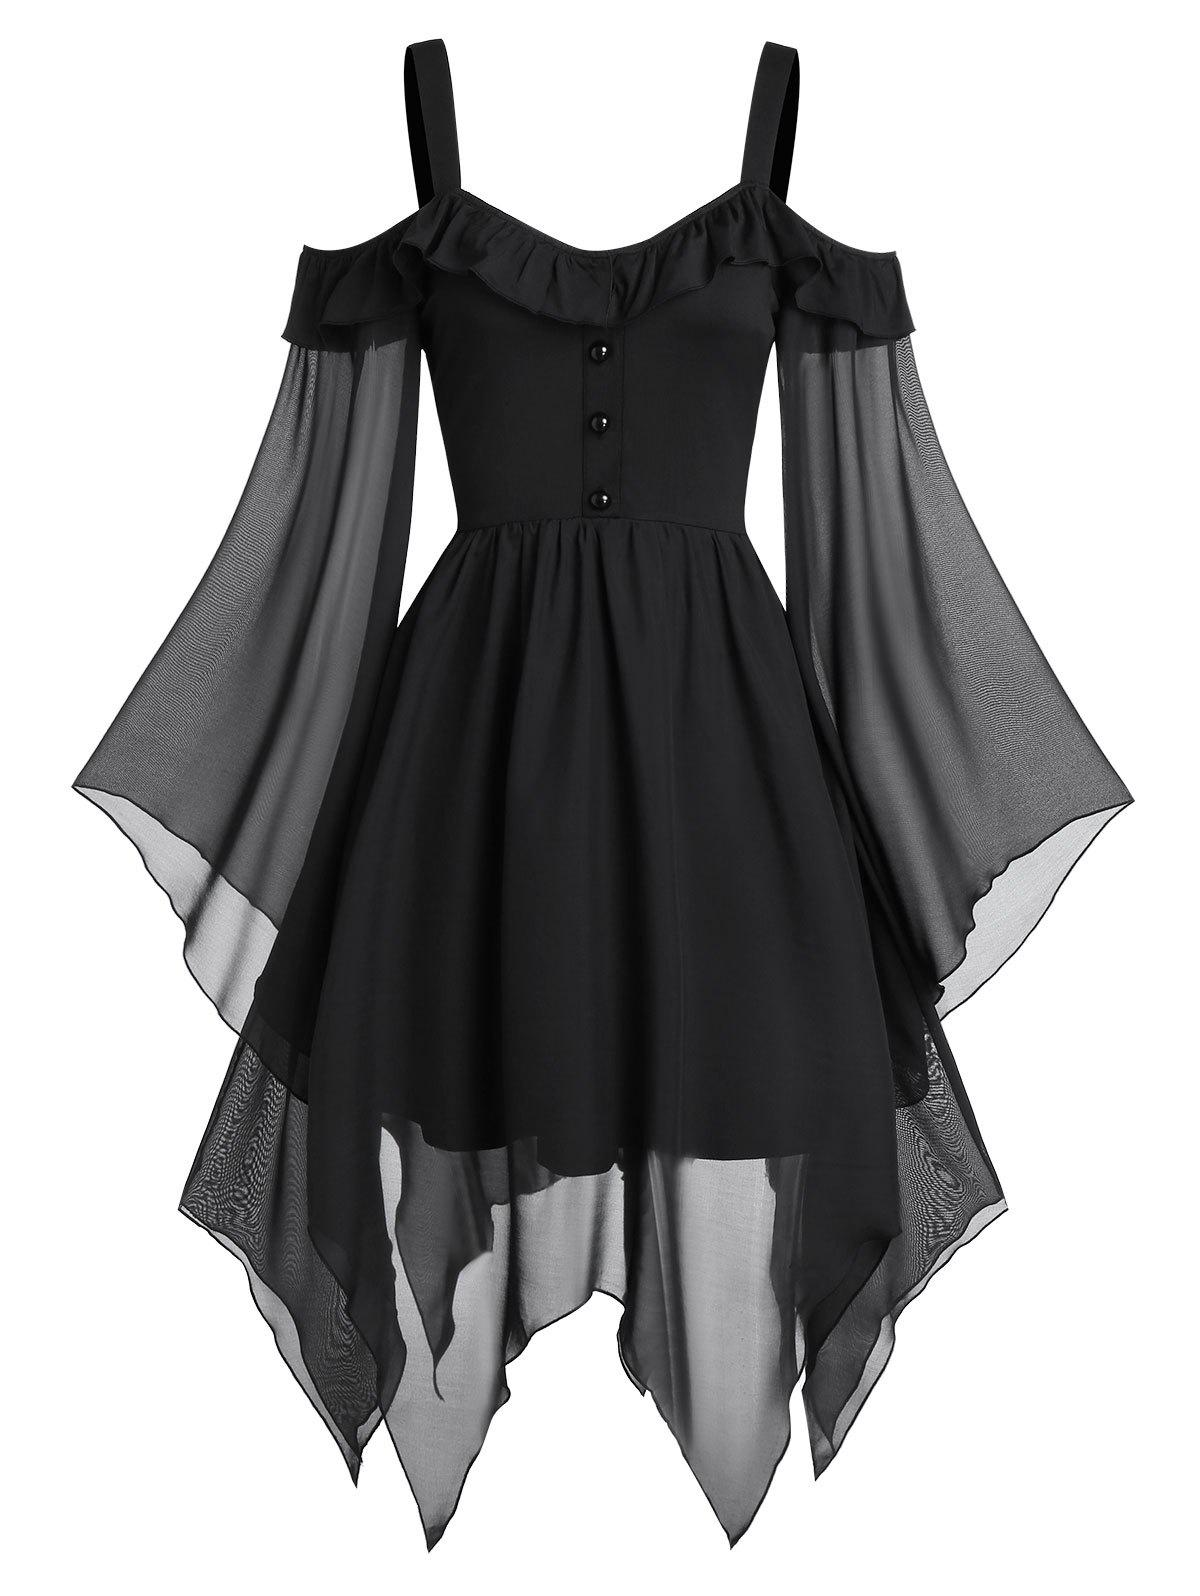 Butterfly Sleeve Cold Shoulder Lace-up Handkerchief Gothic Chiffon Dress - BLACK M